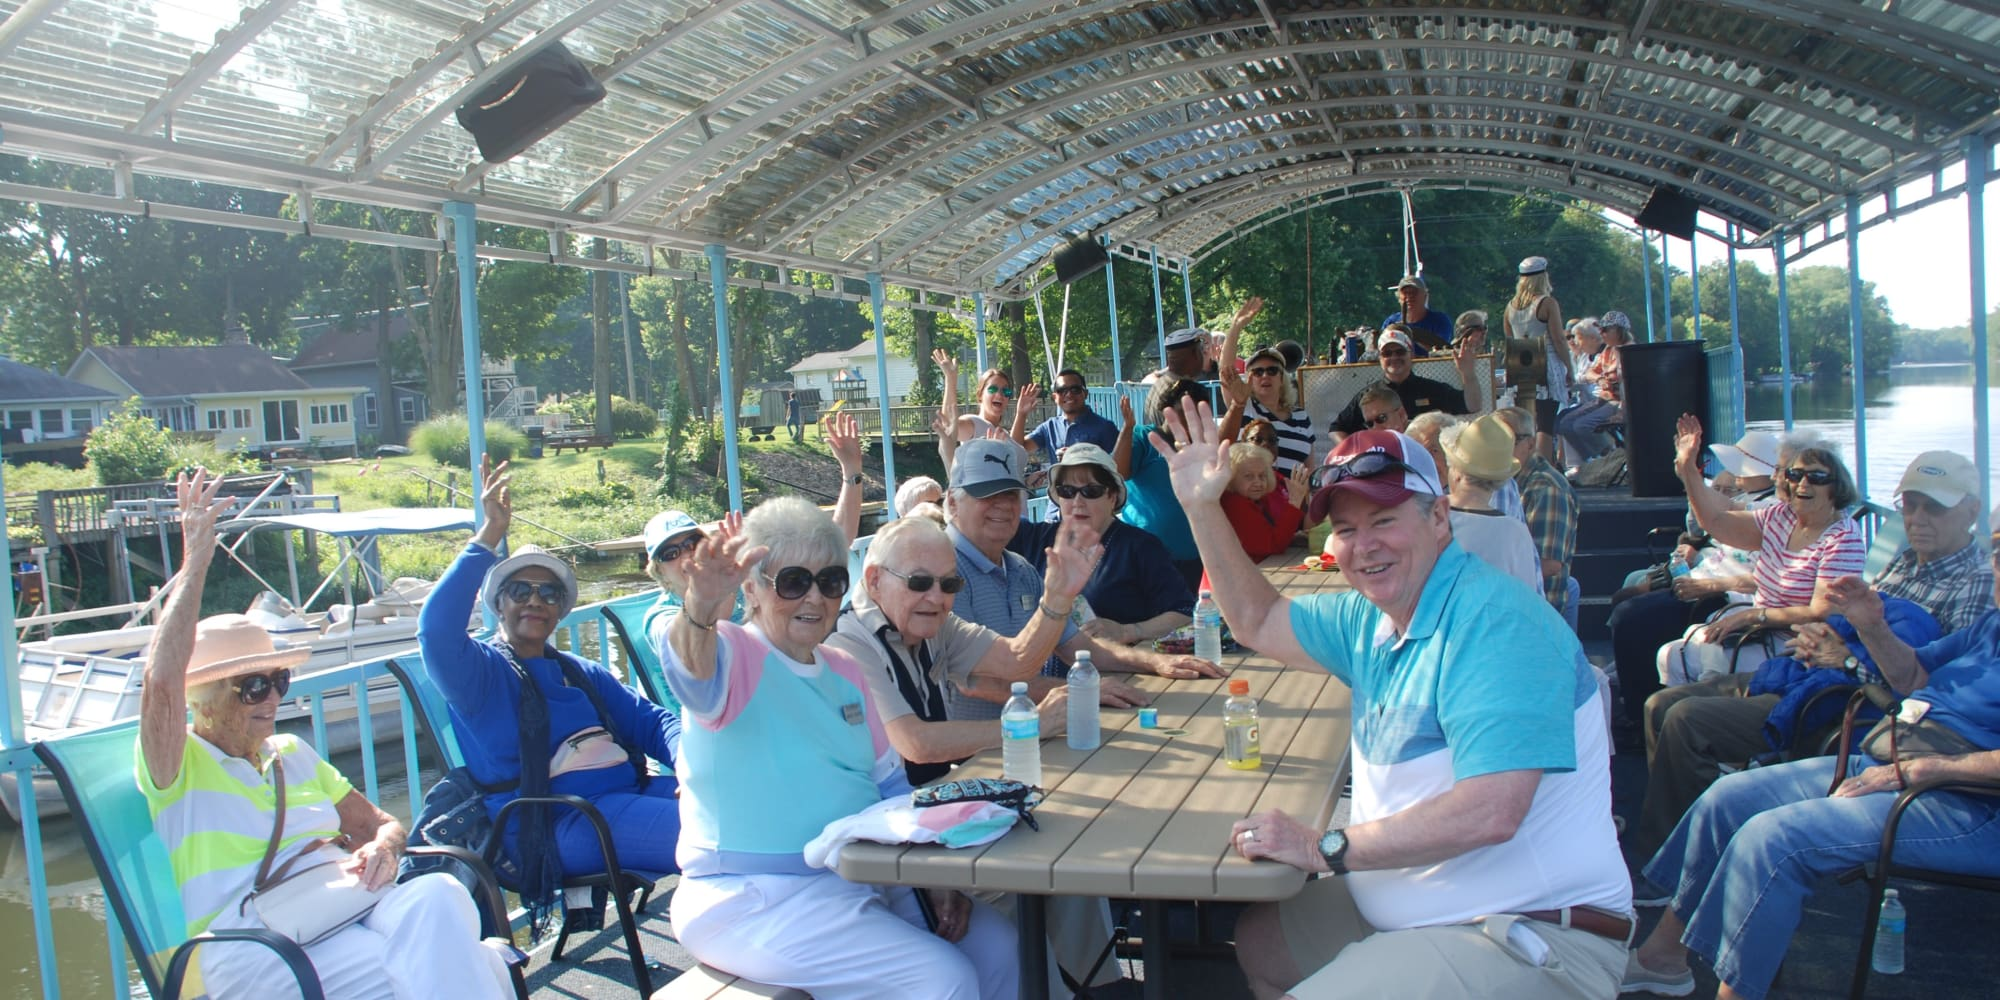 Residents from Camellia Gardens Gracious Retirement Living in Maynard, Massachusetts on a boat